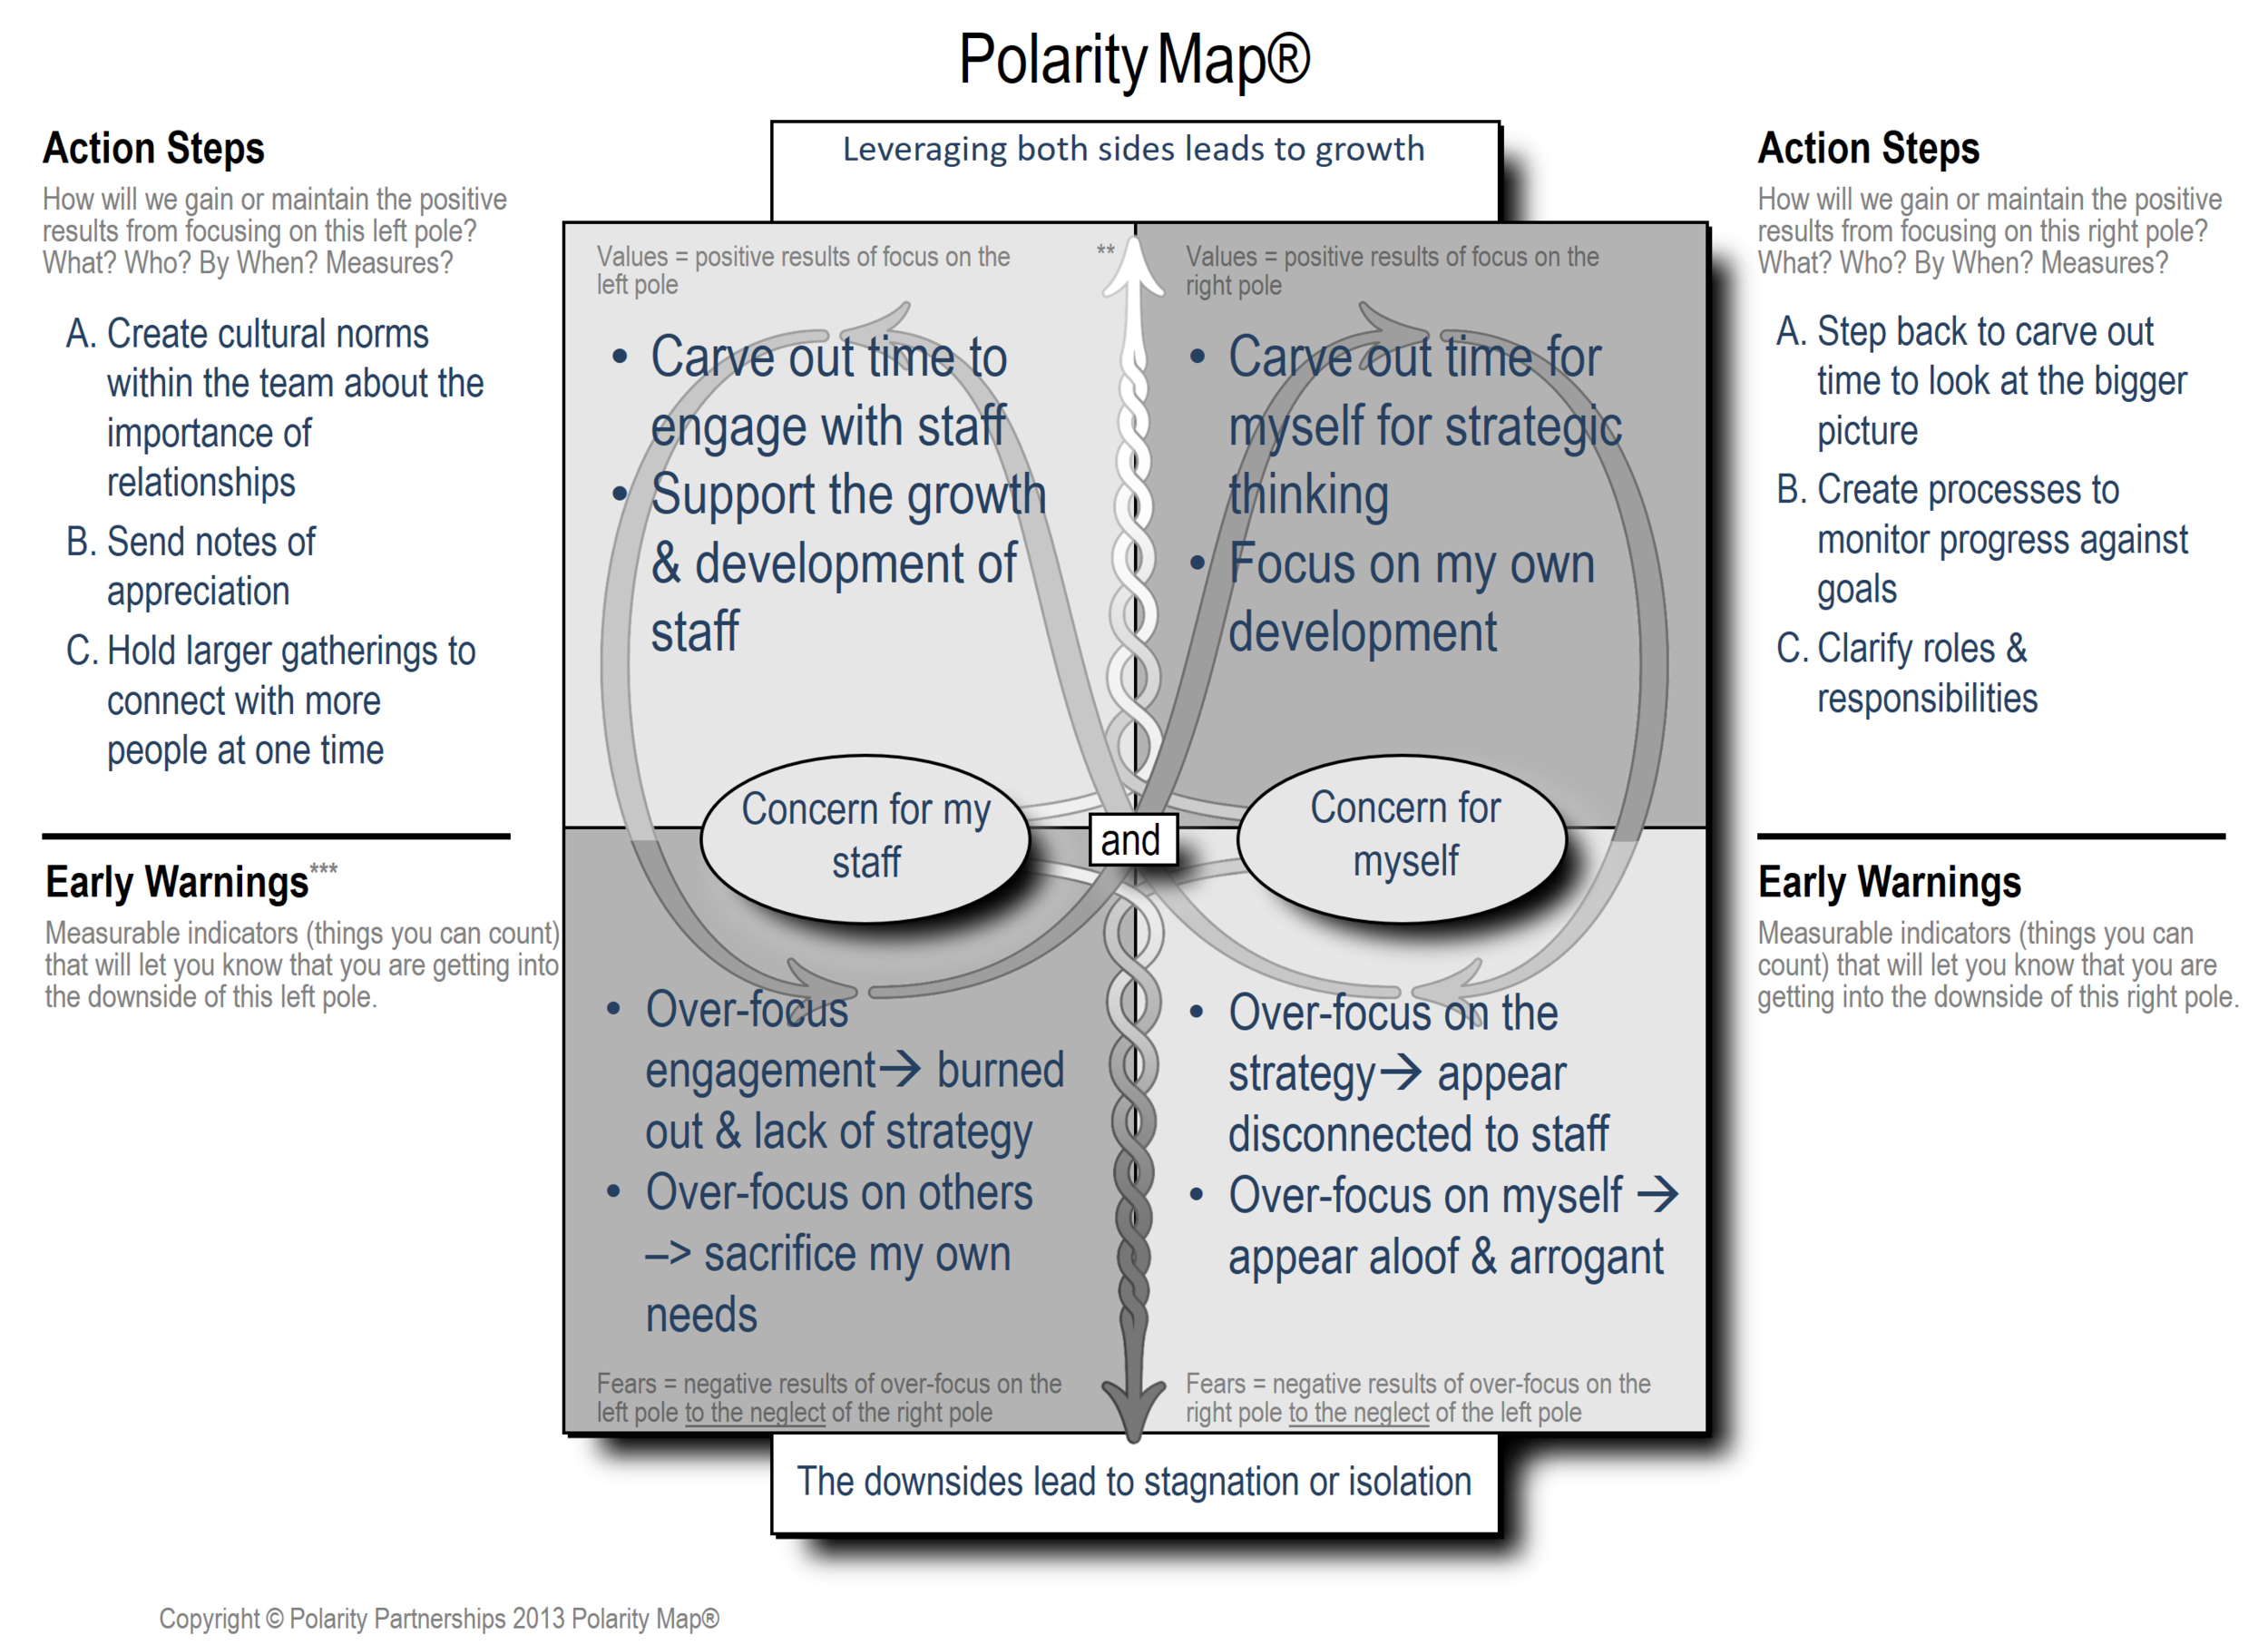 Here is the visual of the Polarity Map Laura discusses